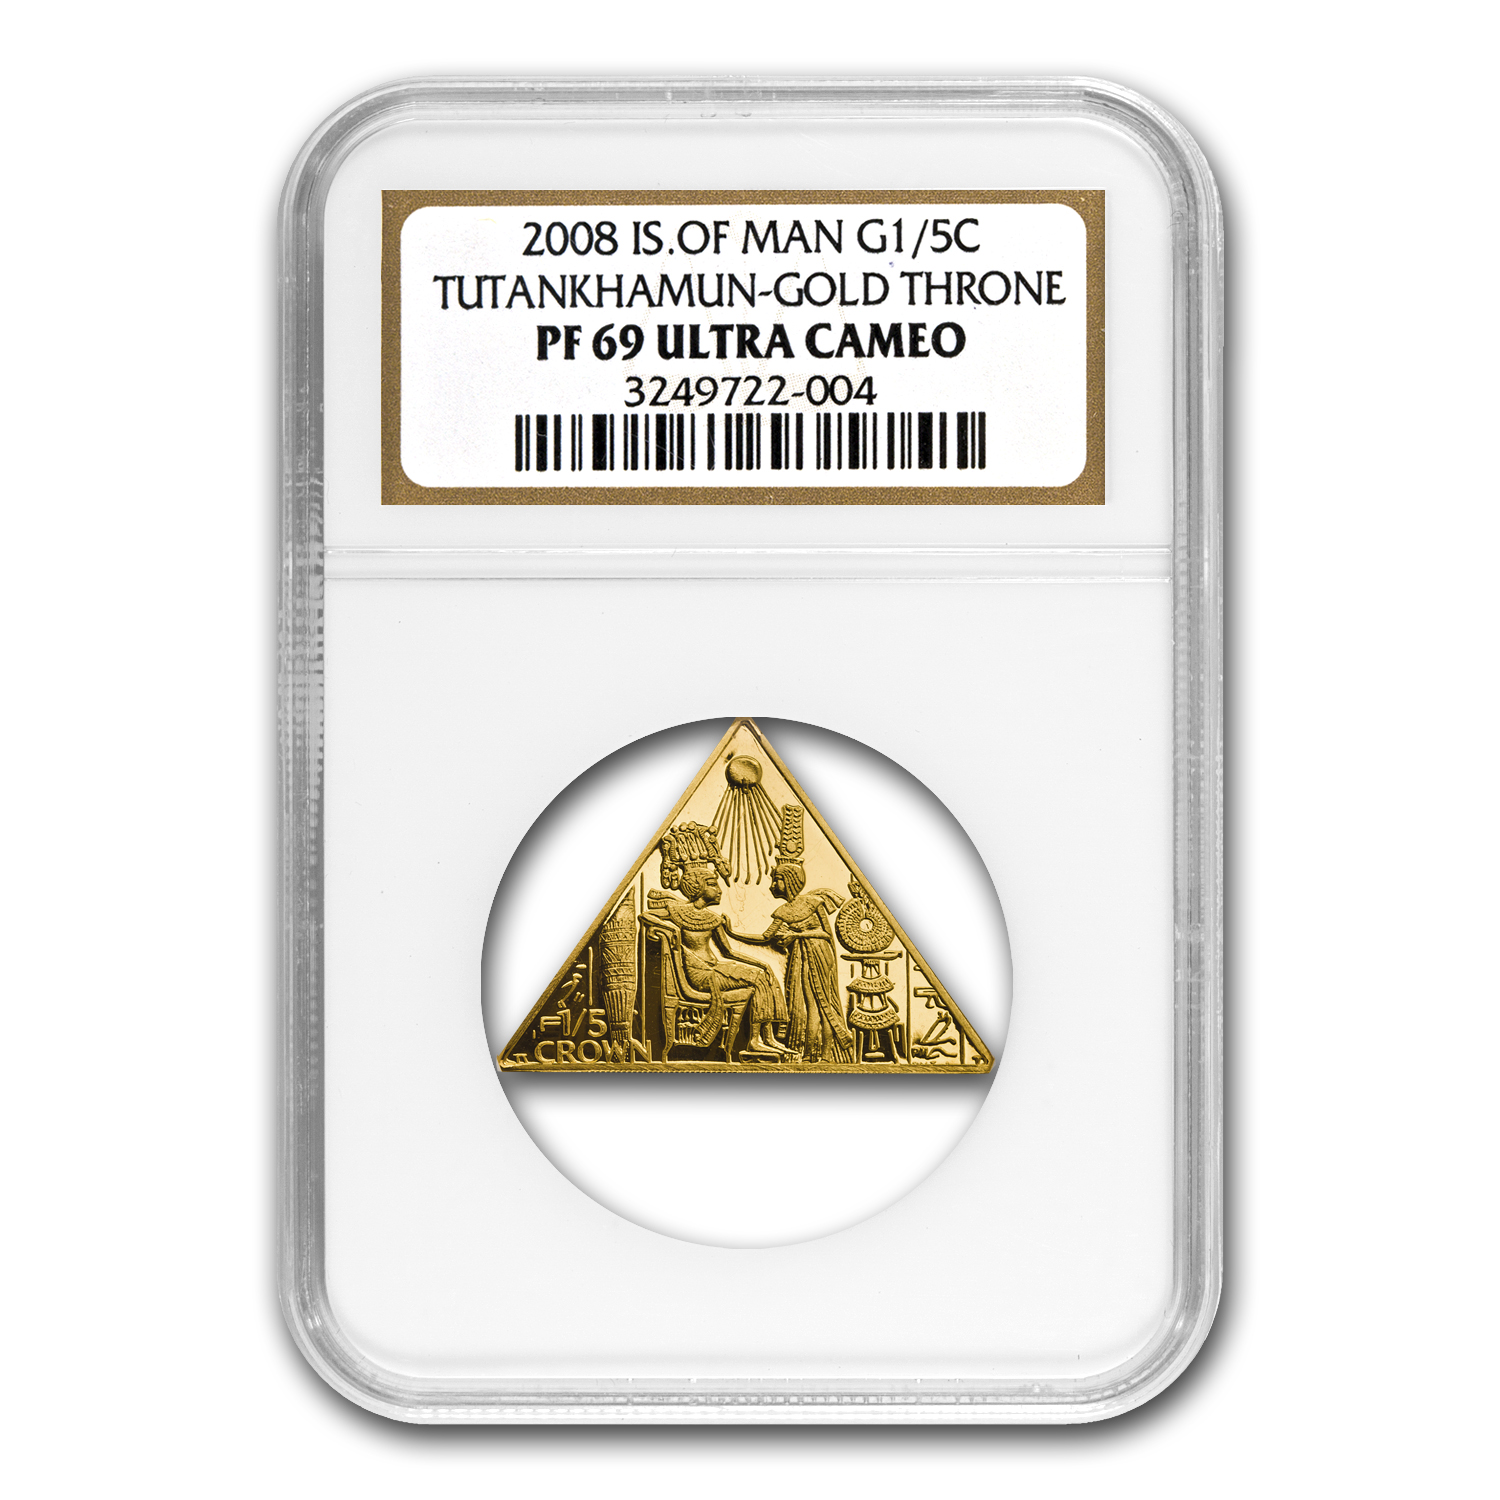 Isle of Man 1/5 oz. Gold Crown King Tut Triangle Coin NGC PF-69UC